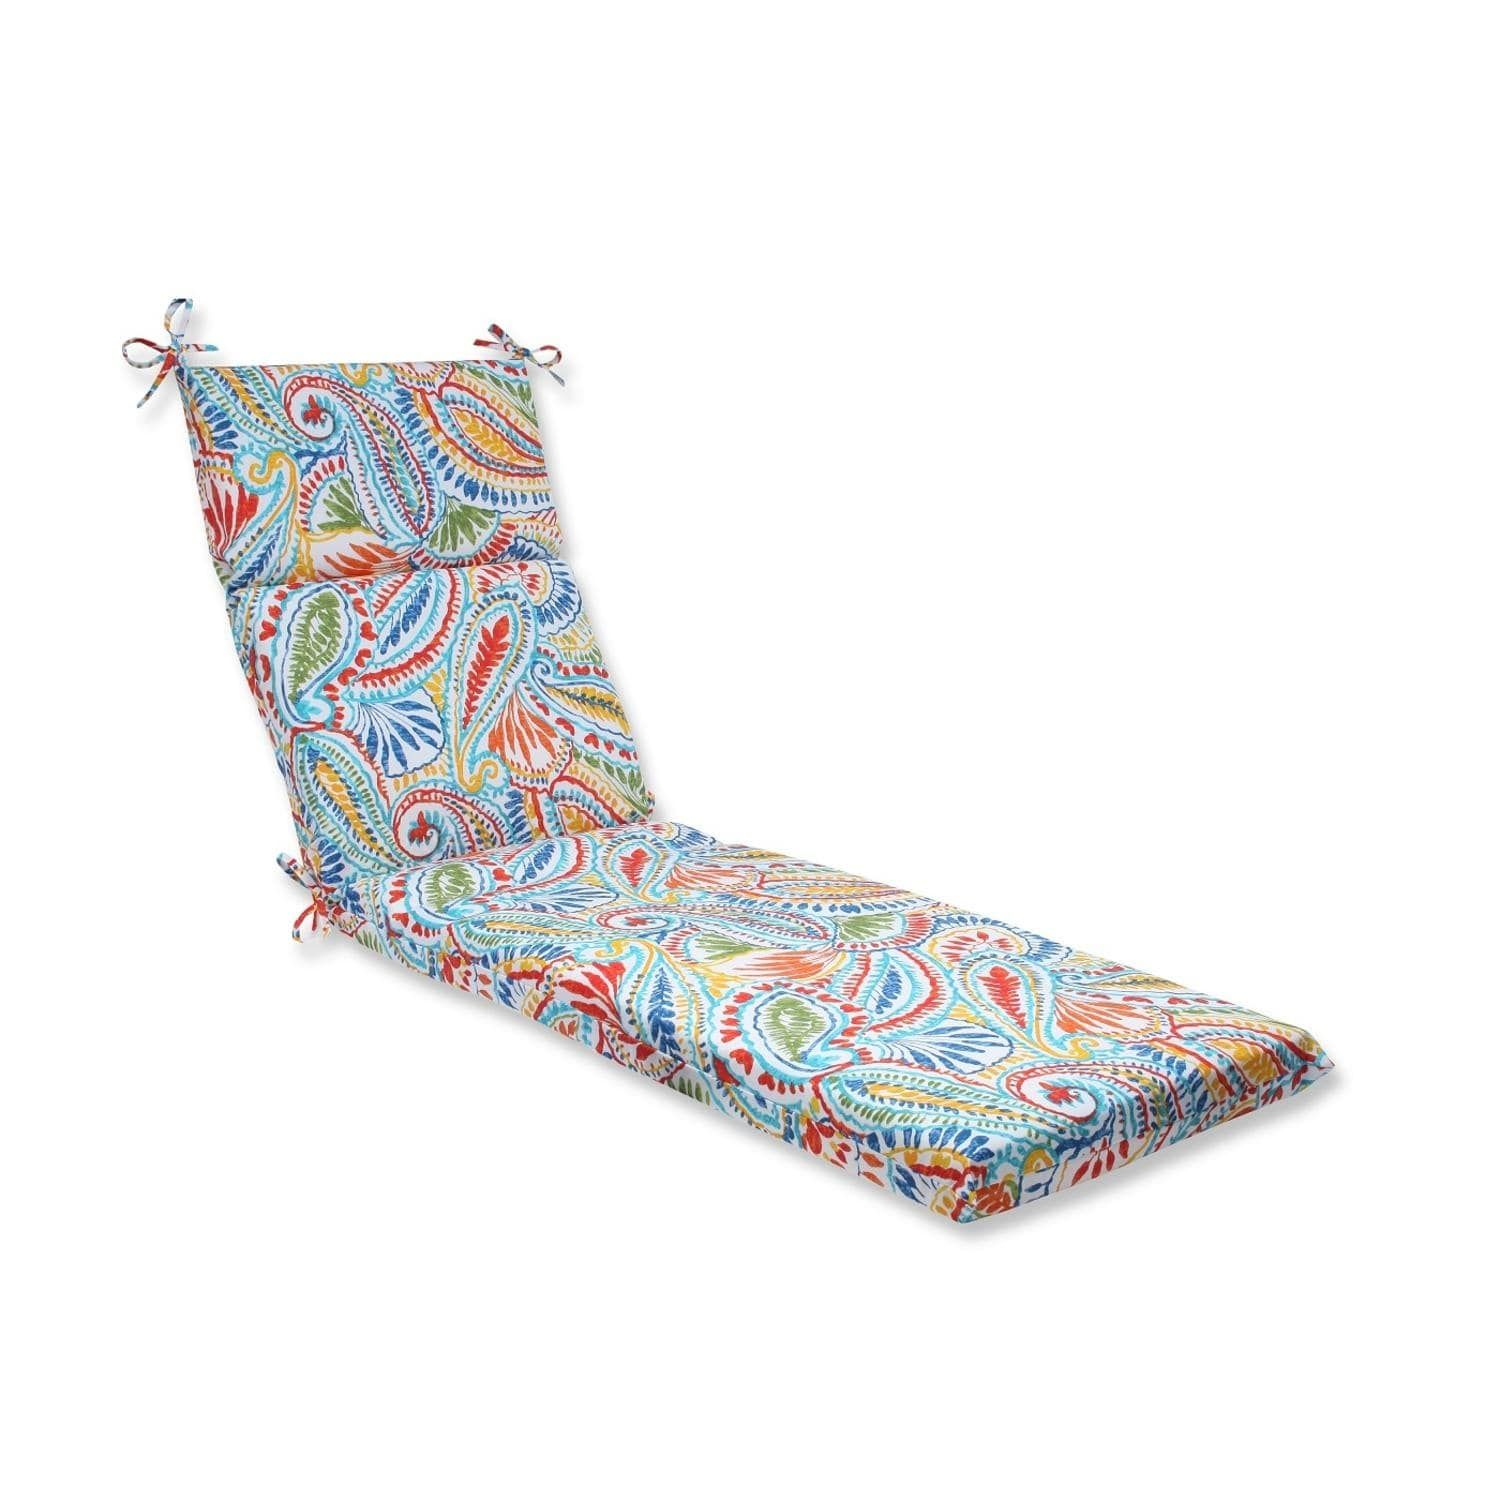 72 5 Quot Paisley Burst Outdoor Patio Chaise Lounge Cushion - Lounger Cushion Cheap